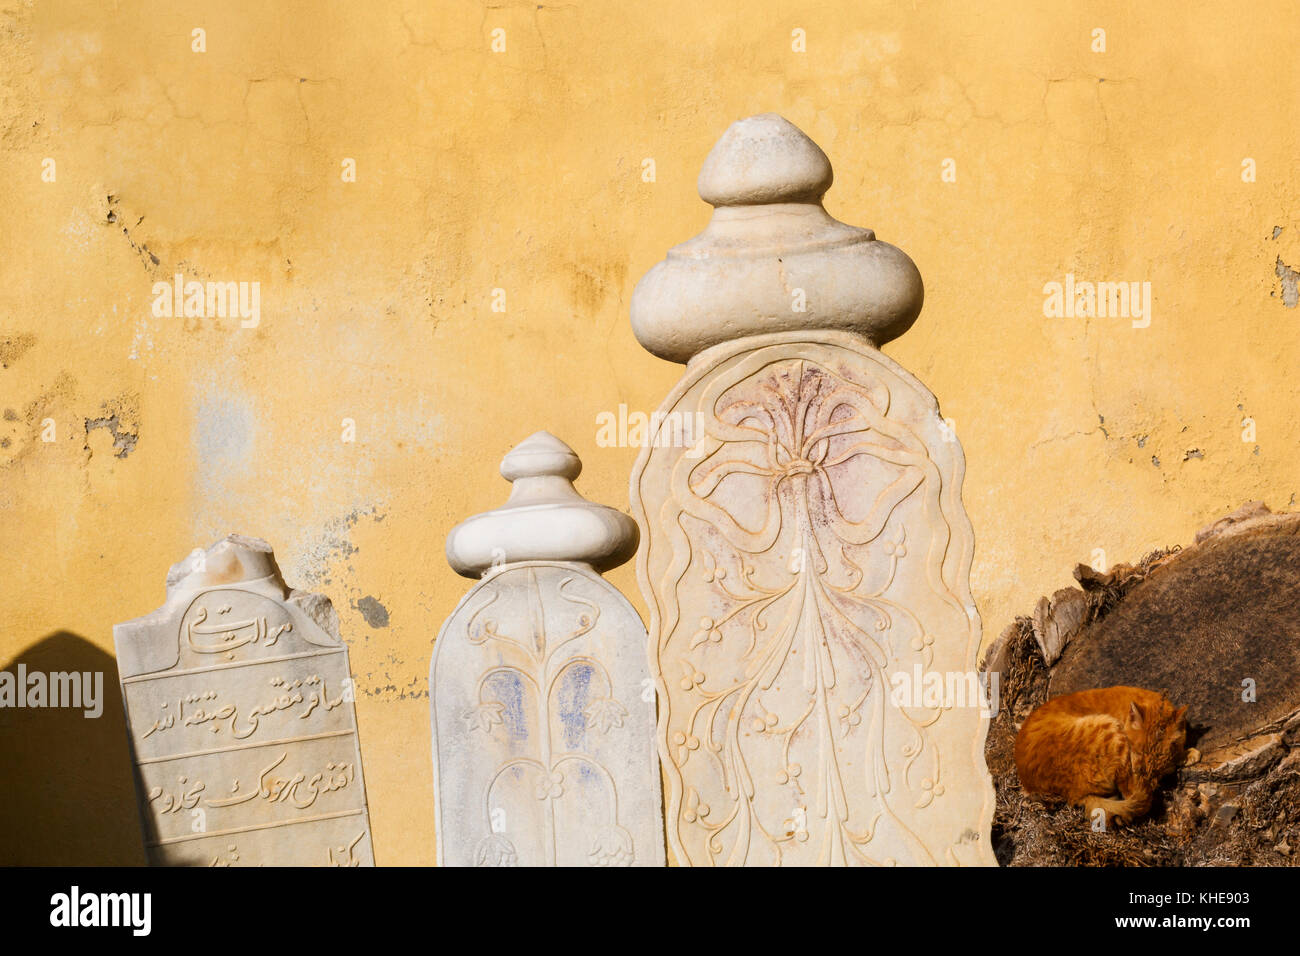 Turkish tombstones in the old town of Chios. - Stock Image